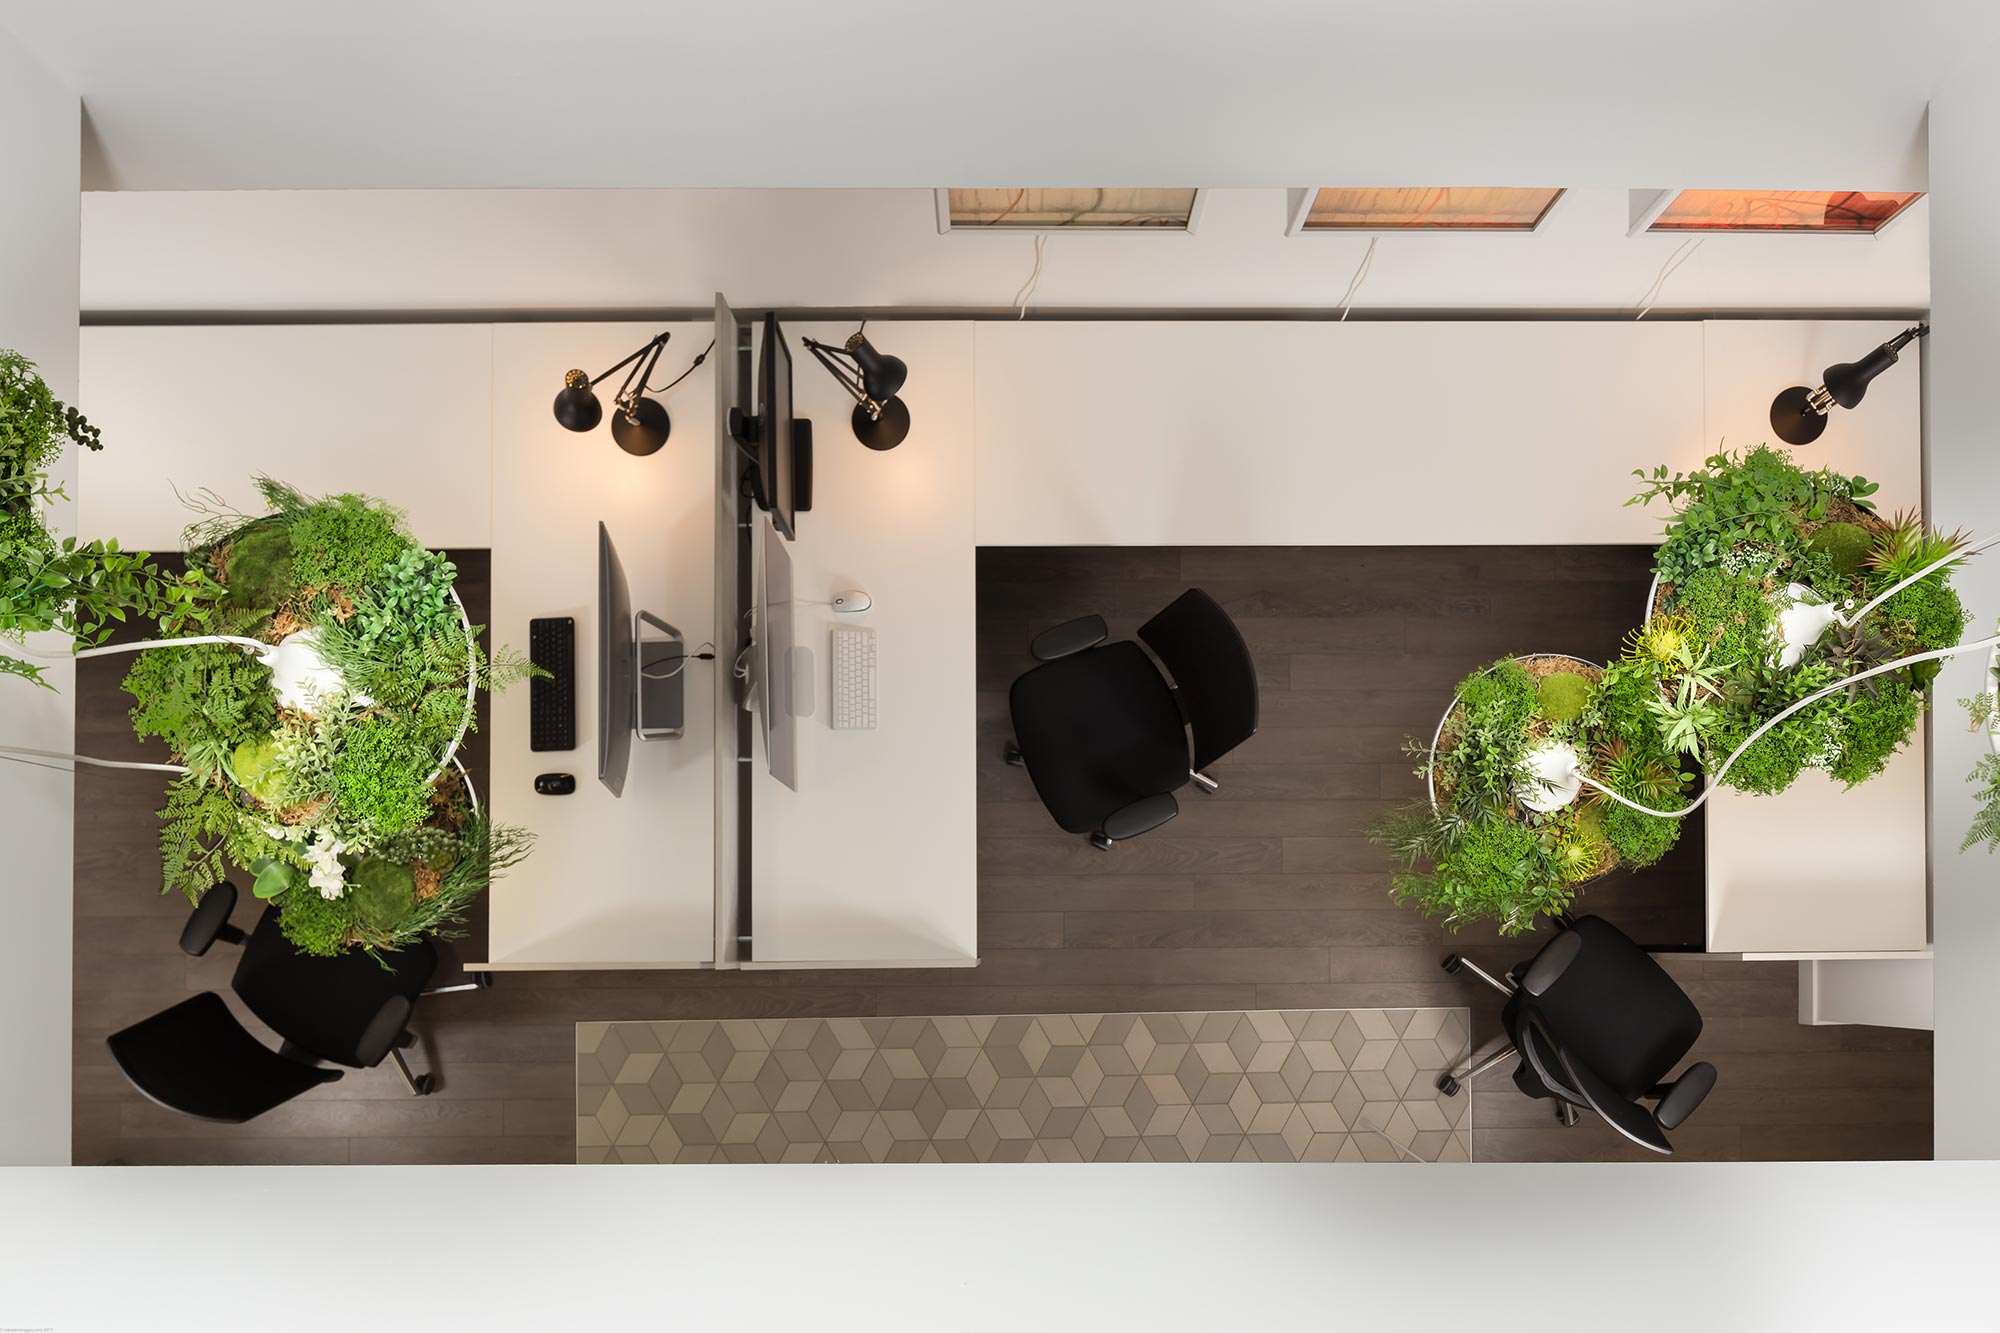 007-Mi-Fold-Co-working-Space-High-Res.jpg